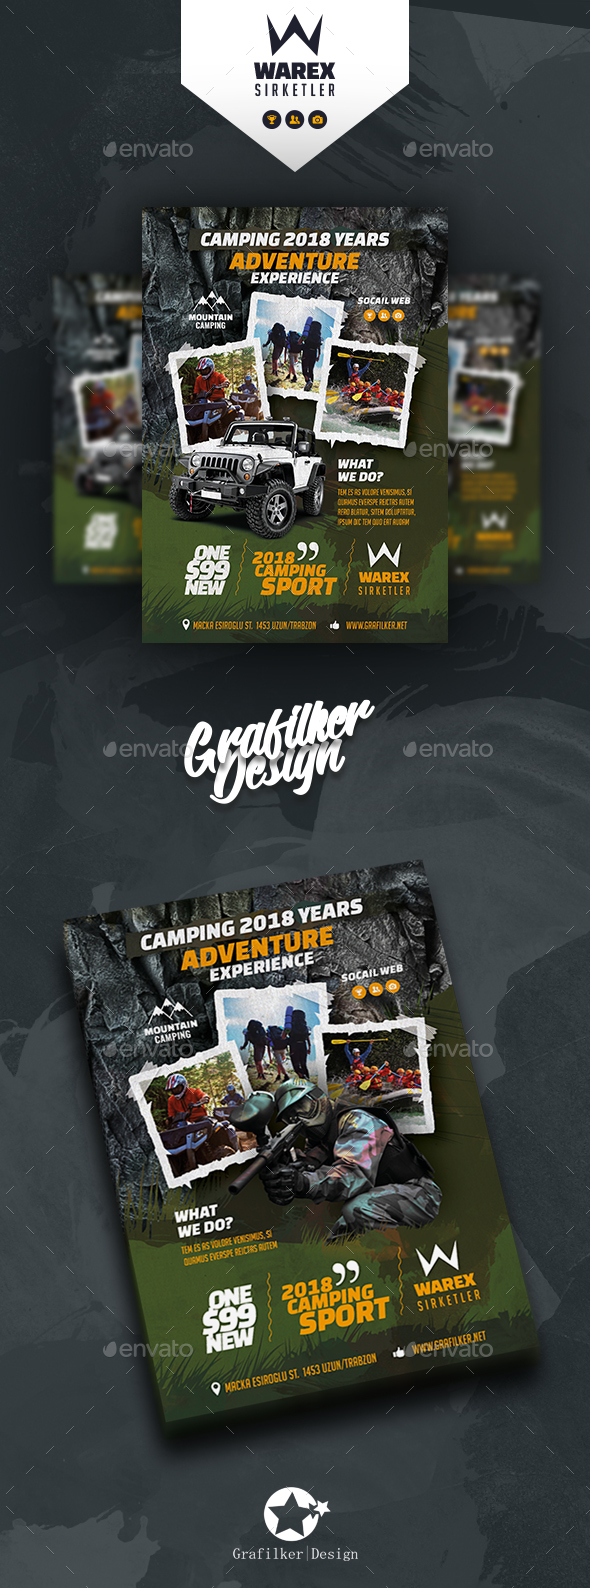 Camping Adventure Flyer Templates - Corporate Flyers